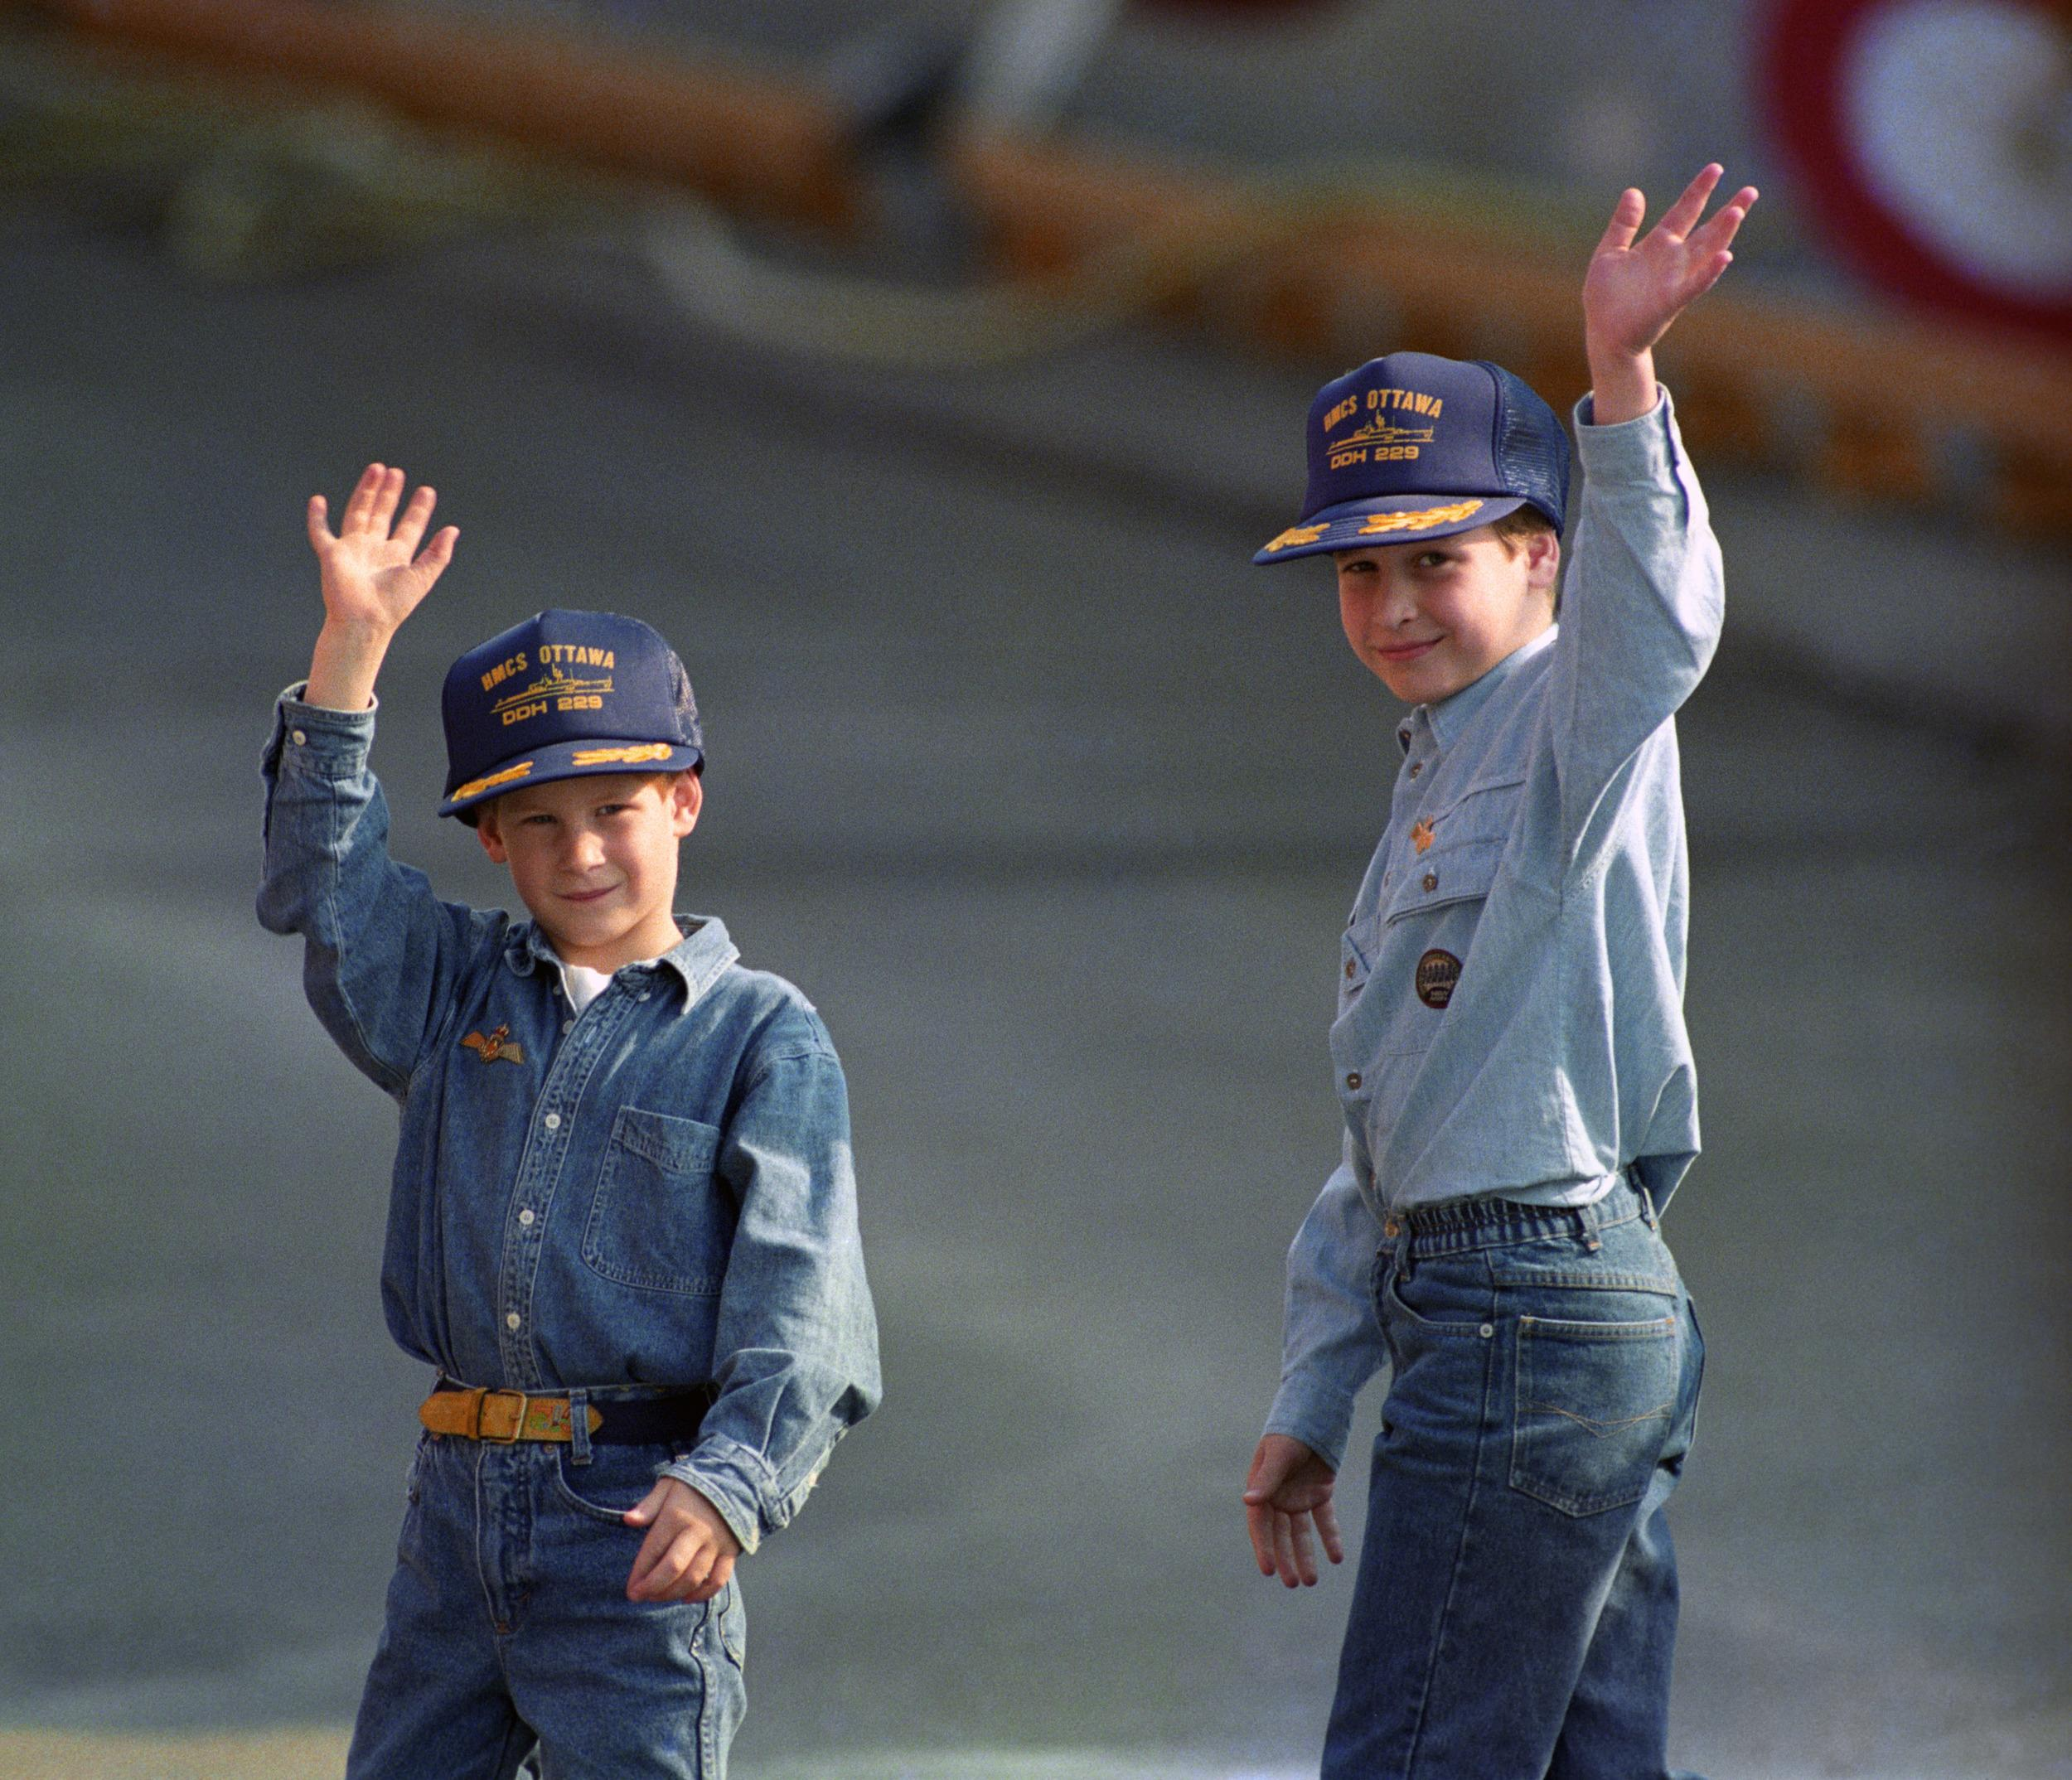 Prince William, 9, and his younger brother, Prince Harry, 7, wear baseball-style caps given to them by the crew of the Canadian frigate HMCS Ottowa after they toured the ship which is moored alongside the Royal Yacht Britannia on the Toronto waterfront.   (Photo by Martin Keene - PA Images/PA Images via Getty Images)